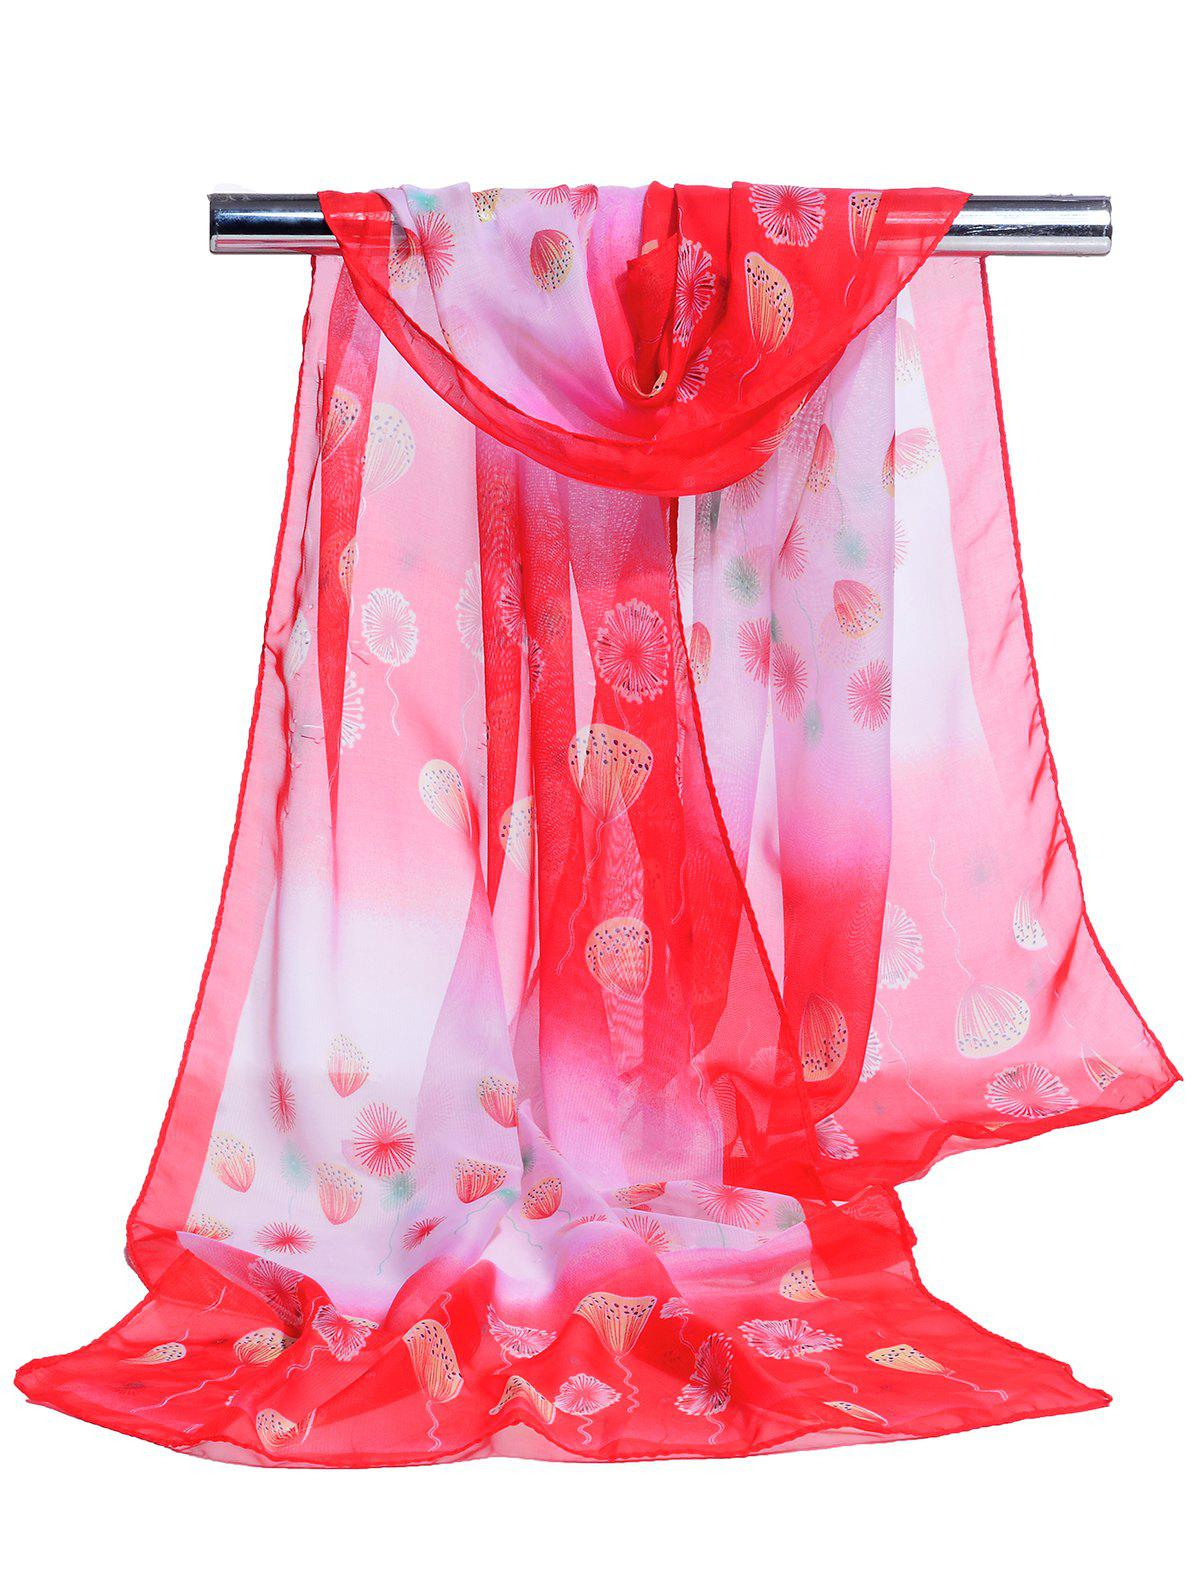 Unique Dandelion Pattern Embellished Chiffon Scarf - RED